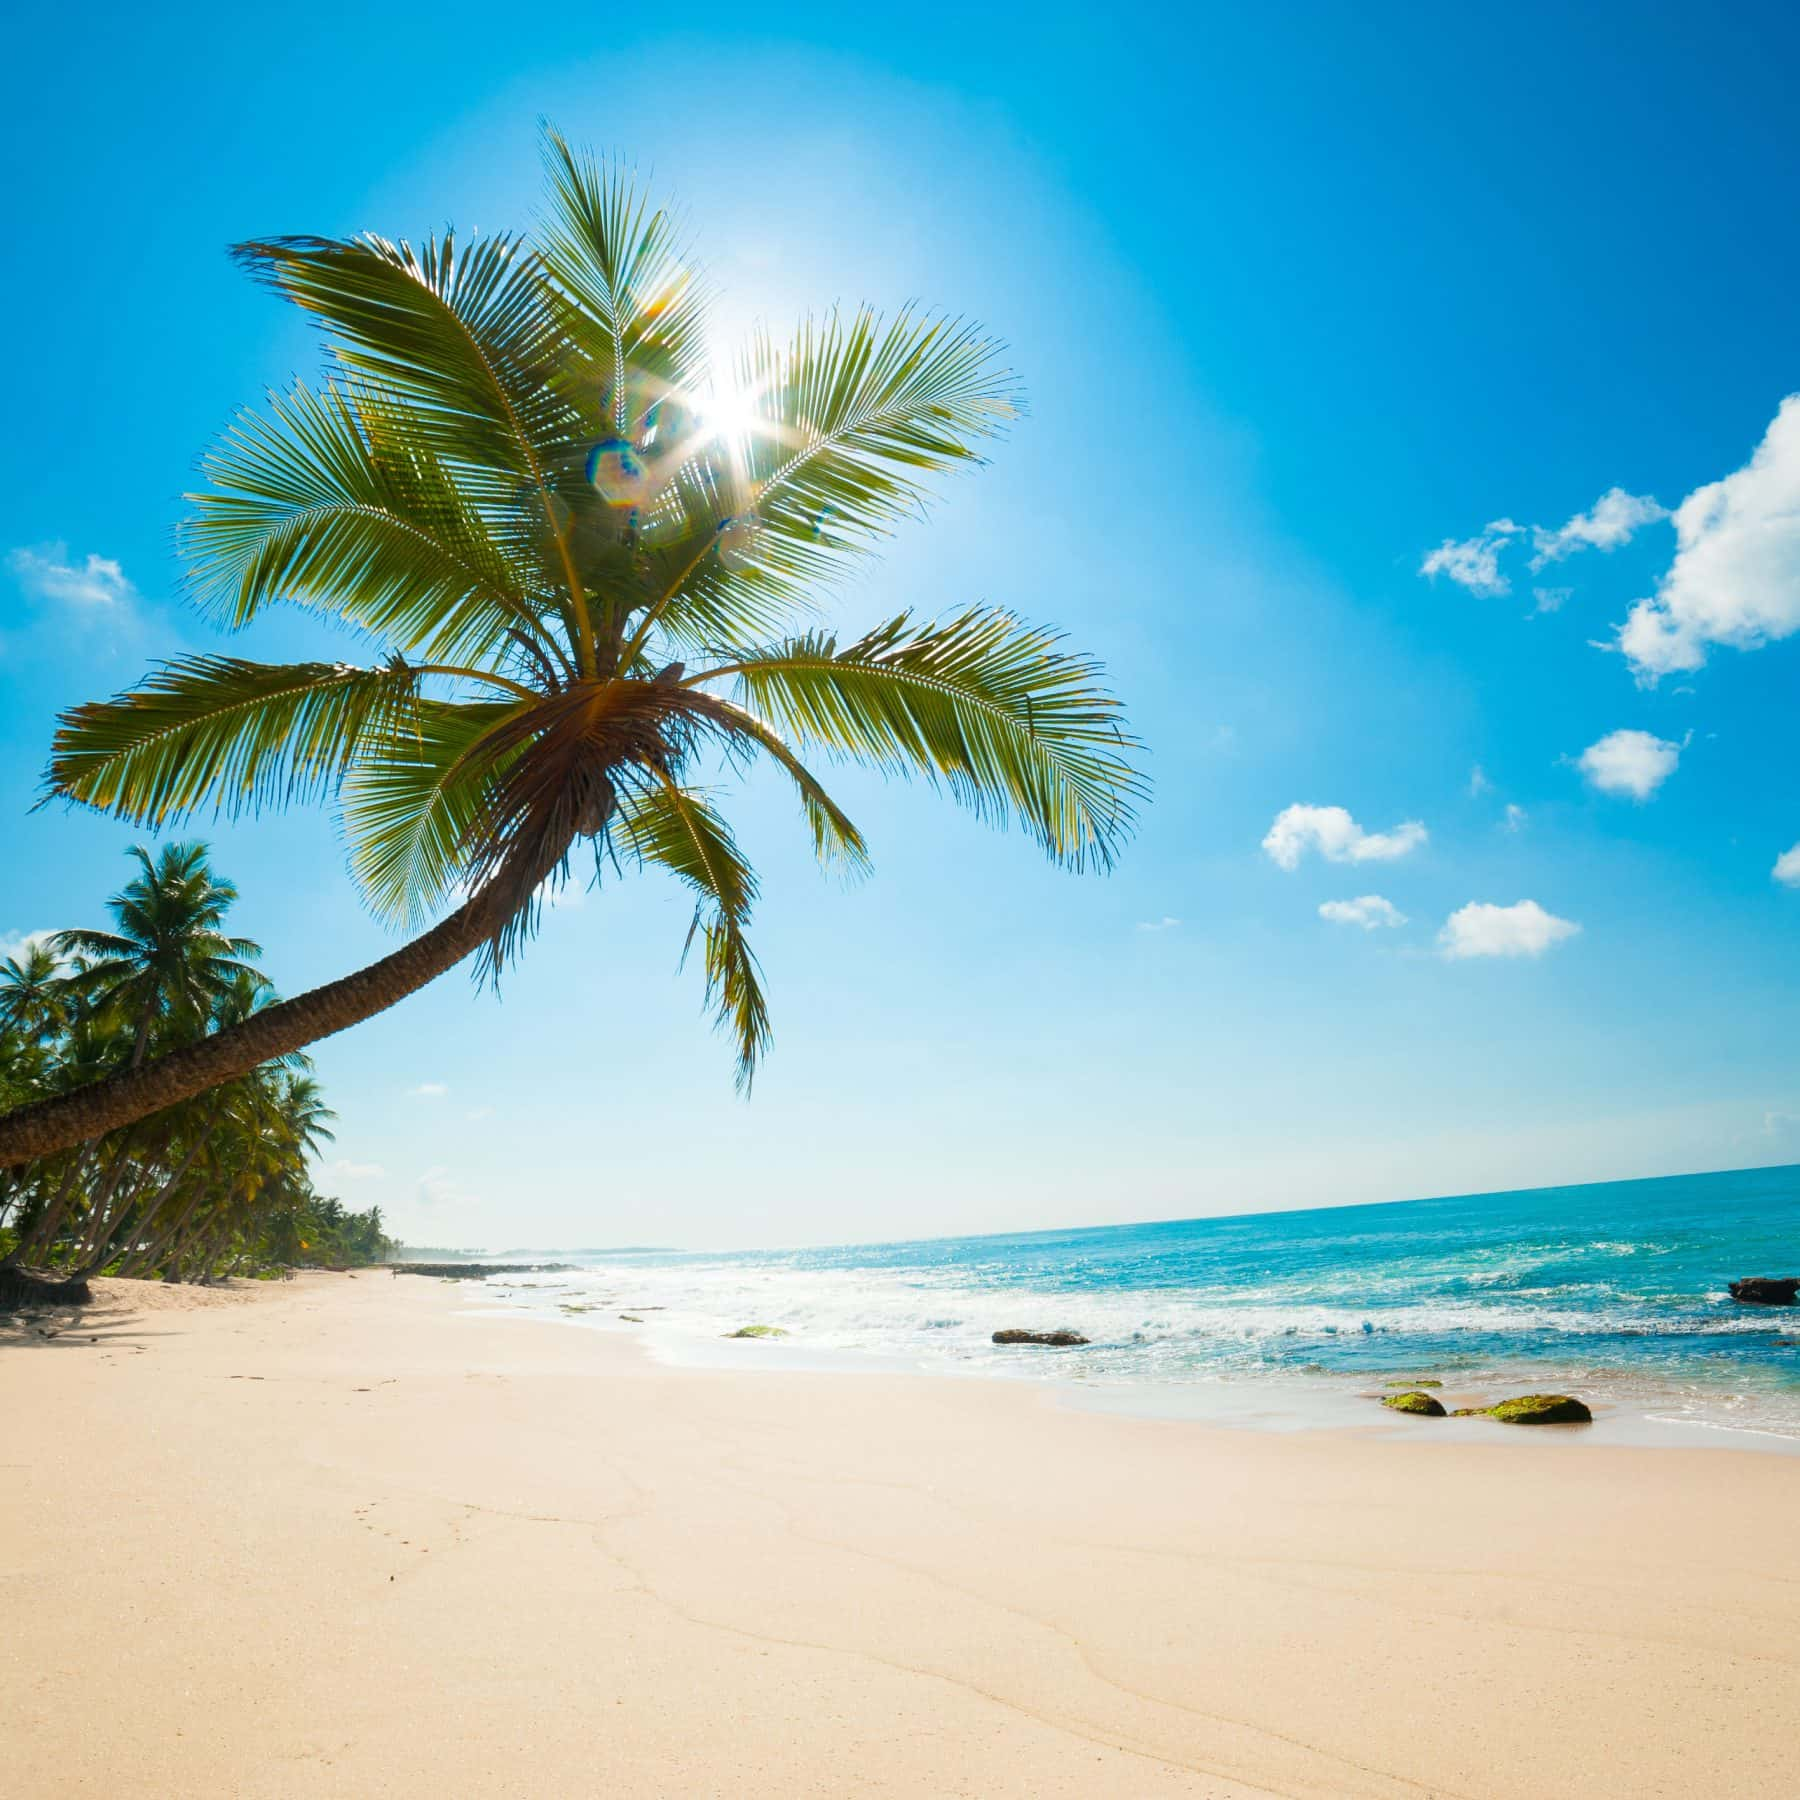 Luxury Holiday Deals, beach, palm tree and ocean view